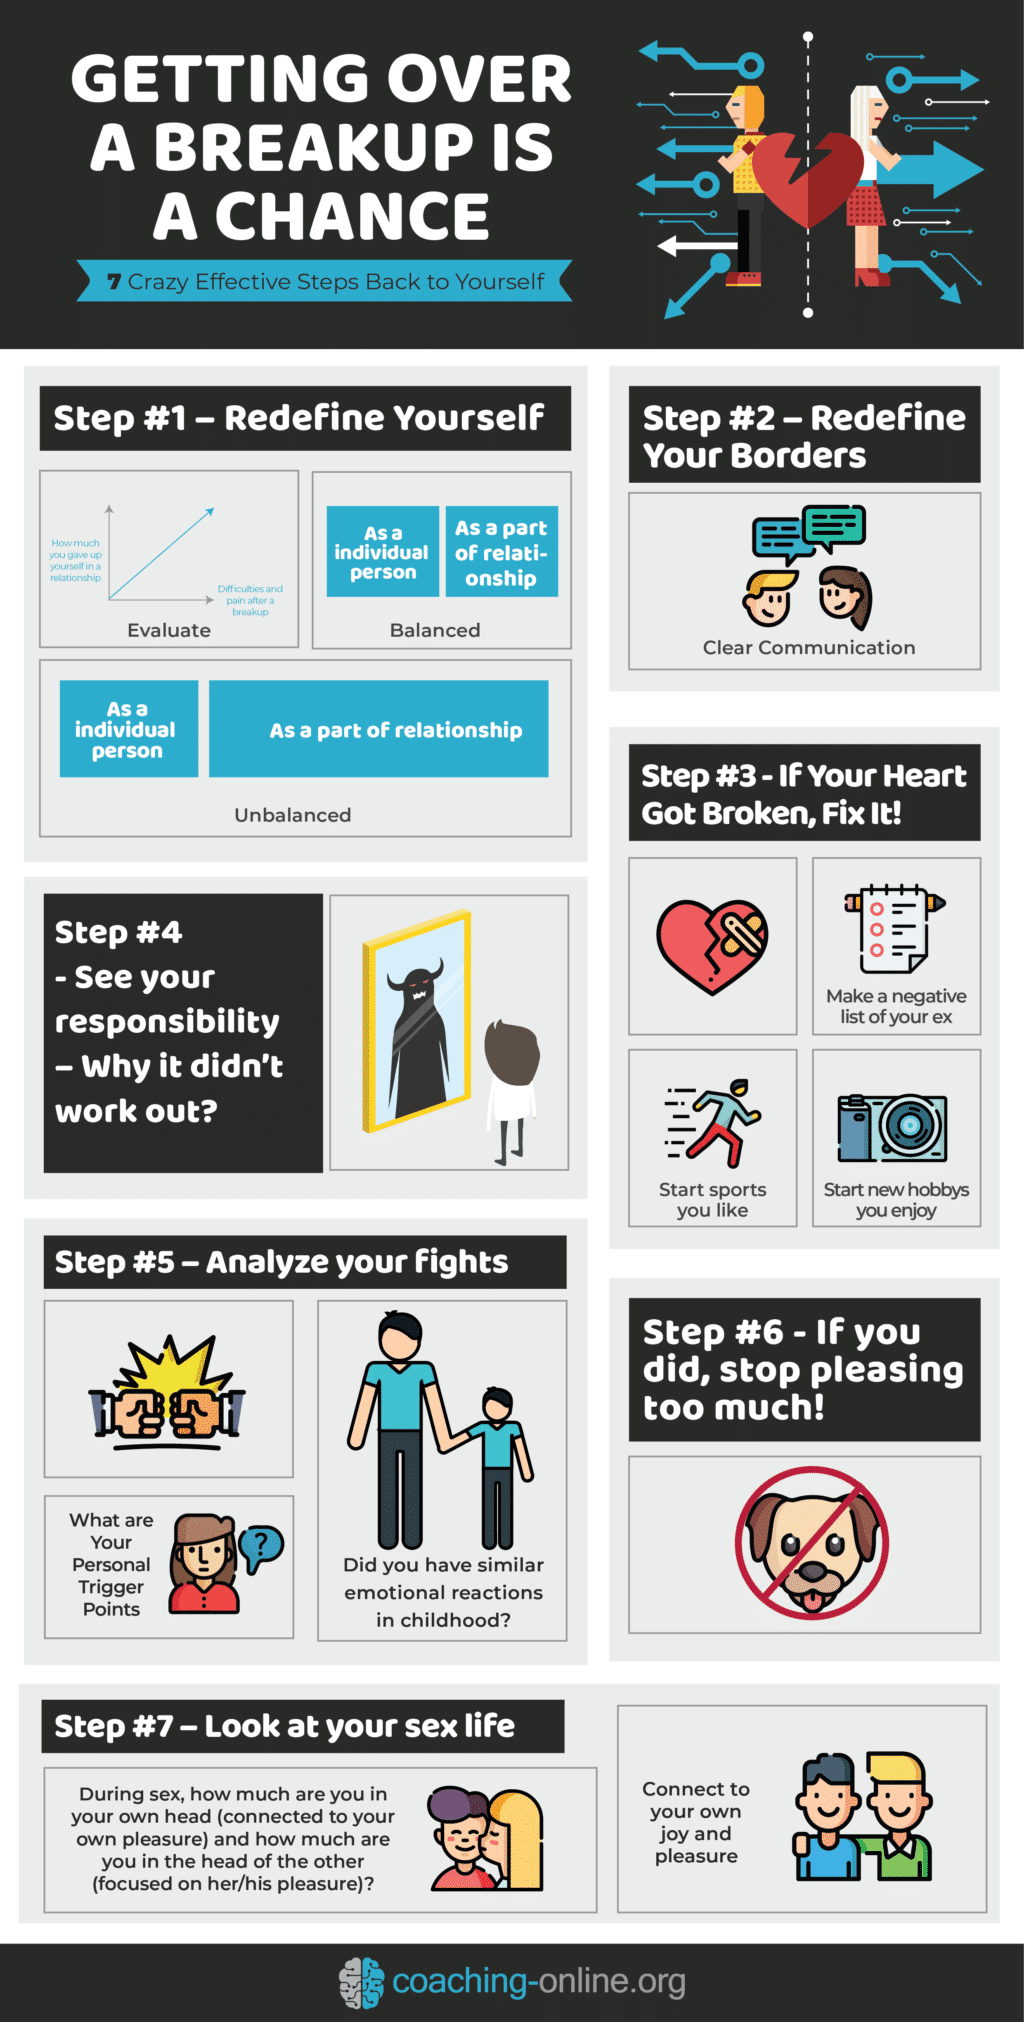 Getting Over A Breakup Is A Chance - Infographic